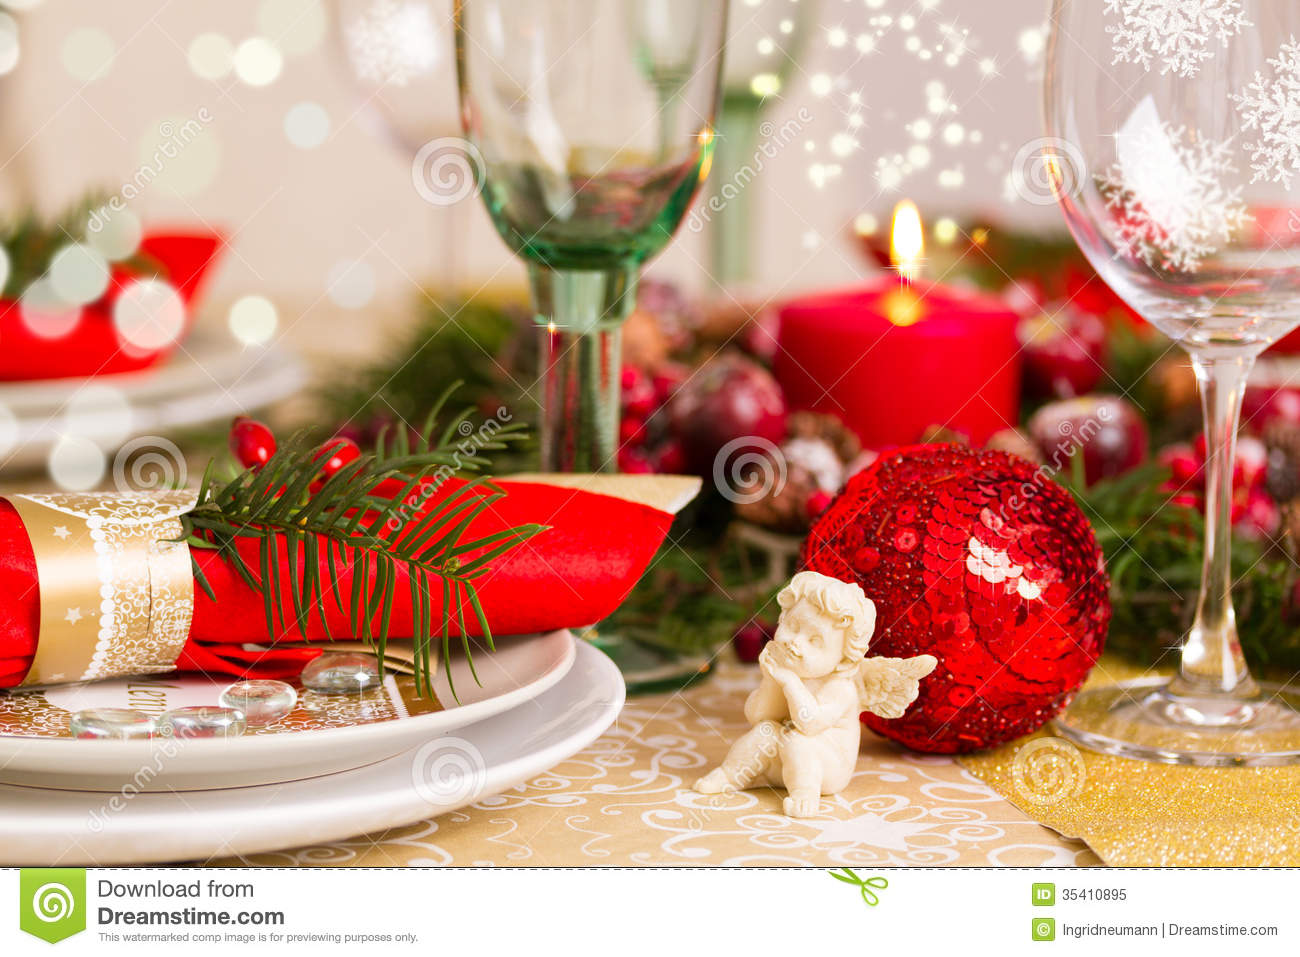 Christmas table decorations gold - Christmas Table Setting With Holiday Decorations Royalty Free Stock Photo